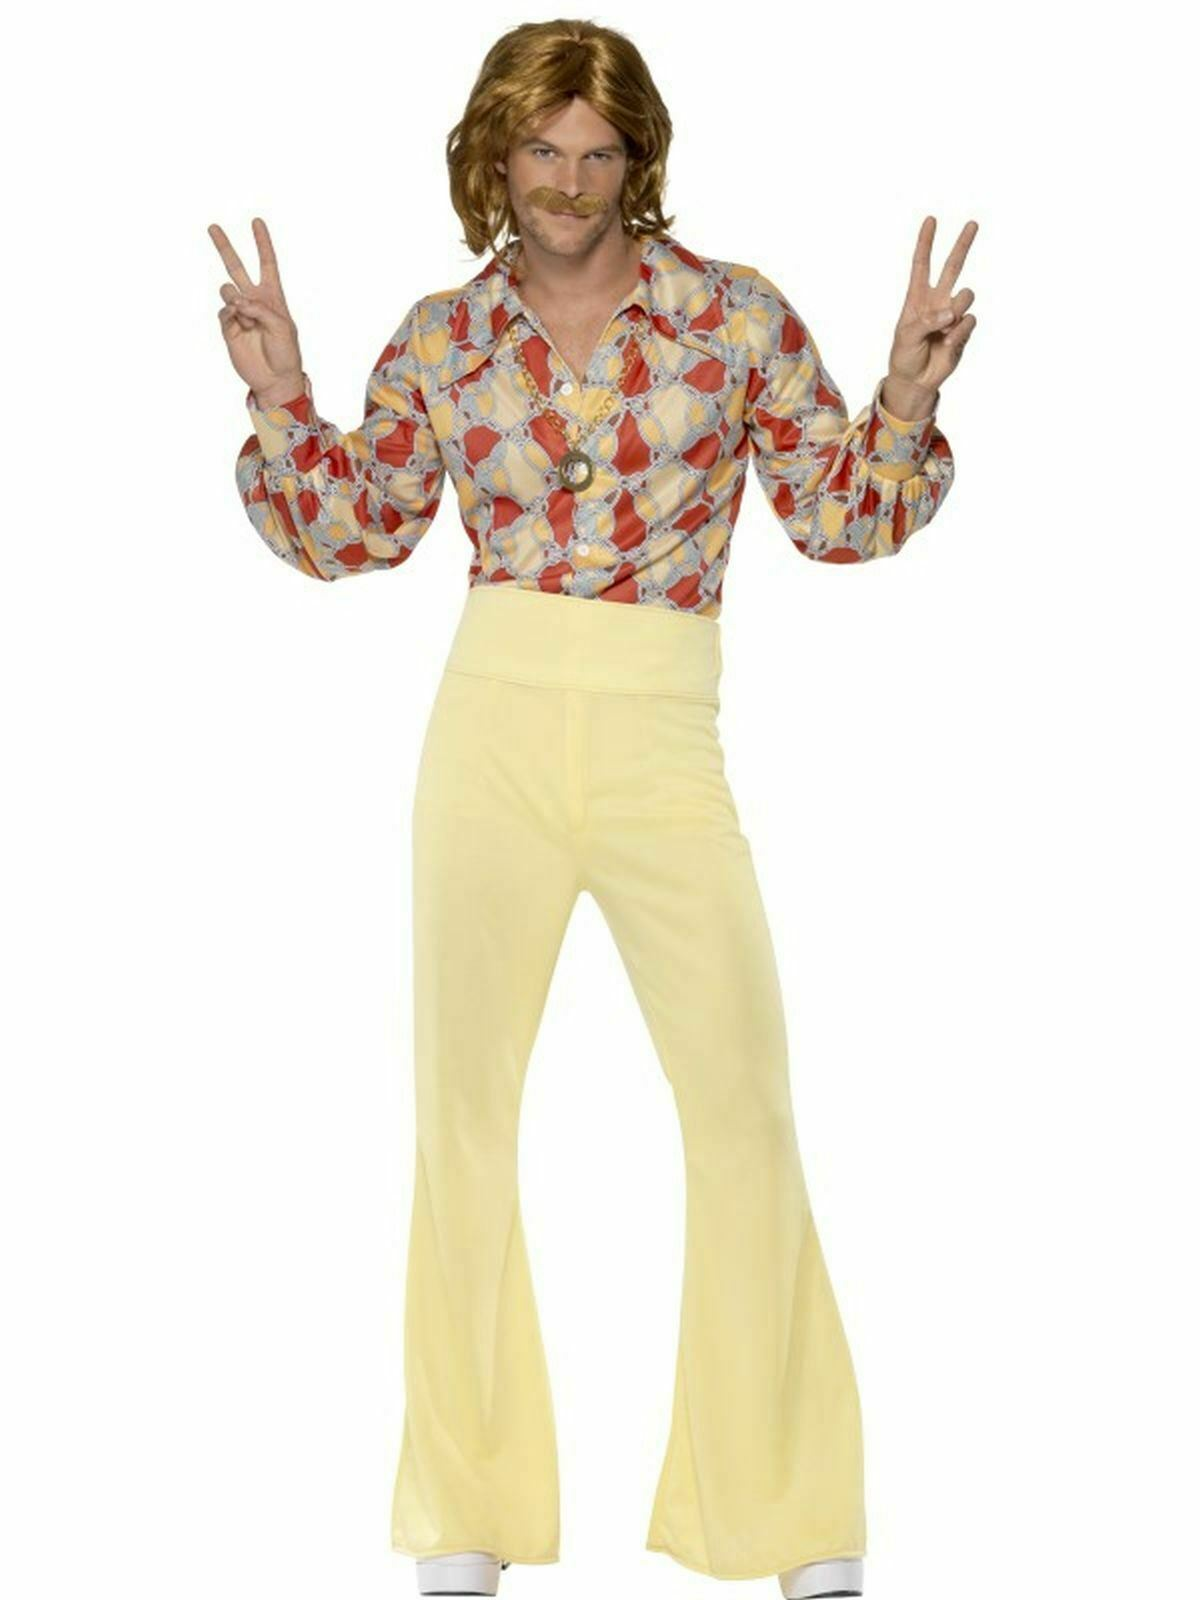 1960s 1970s  Hippy hippie Groovy    Mens Fancy Dress Stag Party Costume Outfit eb57fd